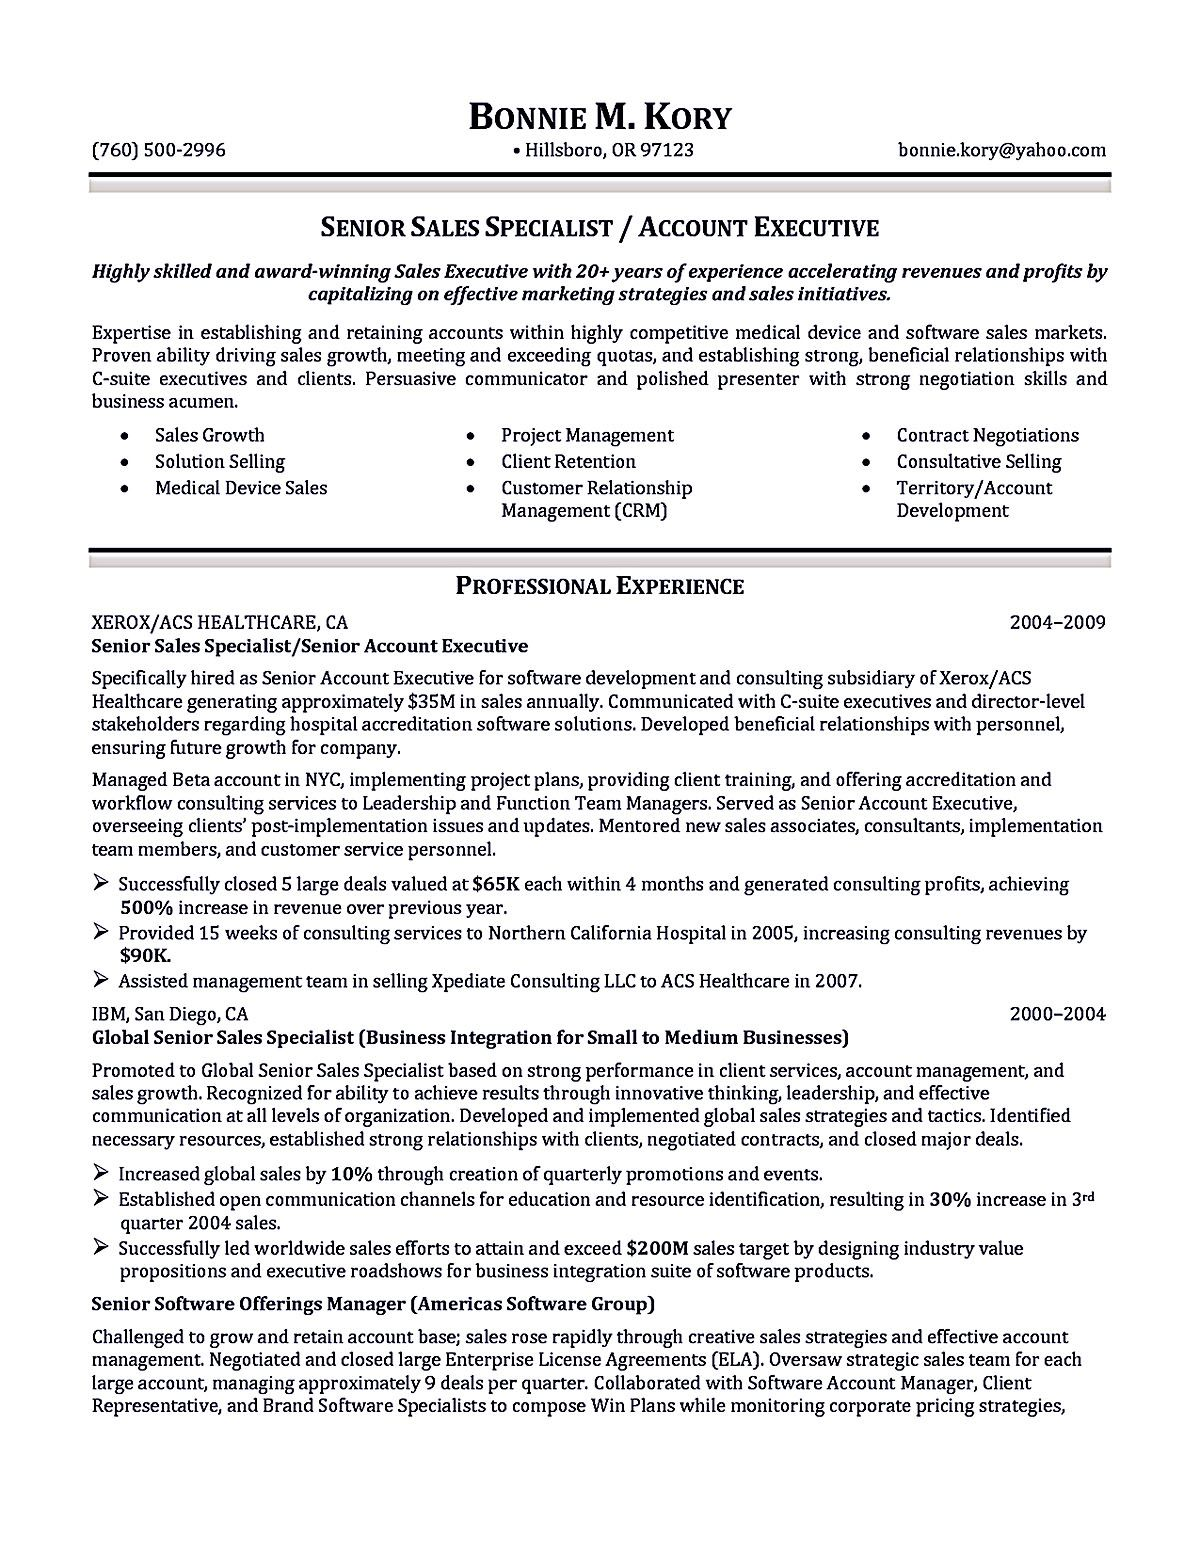 Account Executive Resume Sample Account Executive Resume Is Like Your  Weapon To Get The Job You